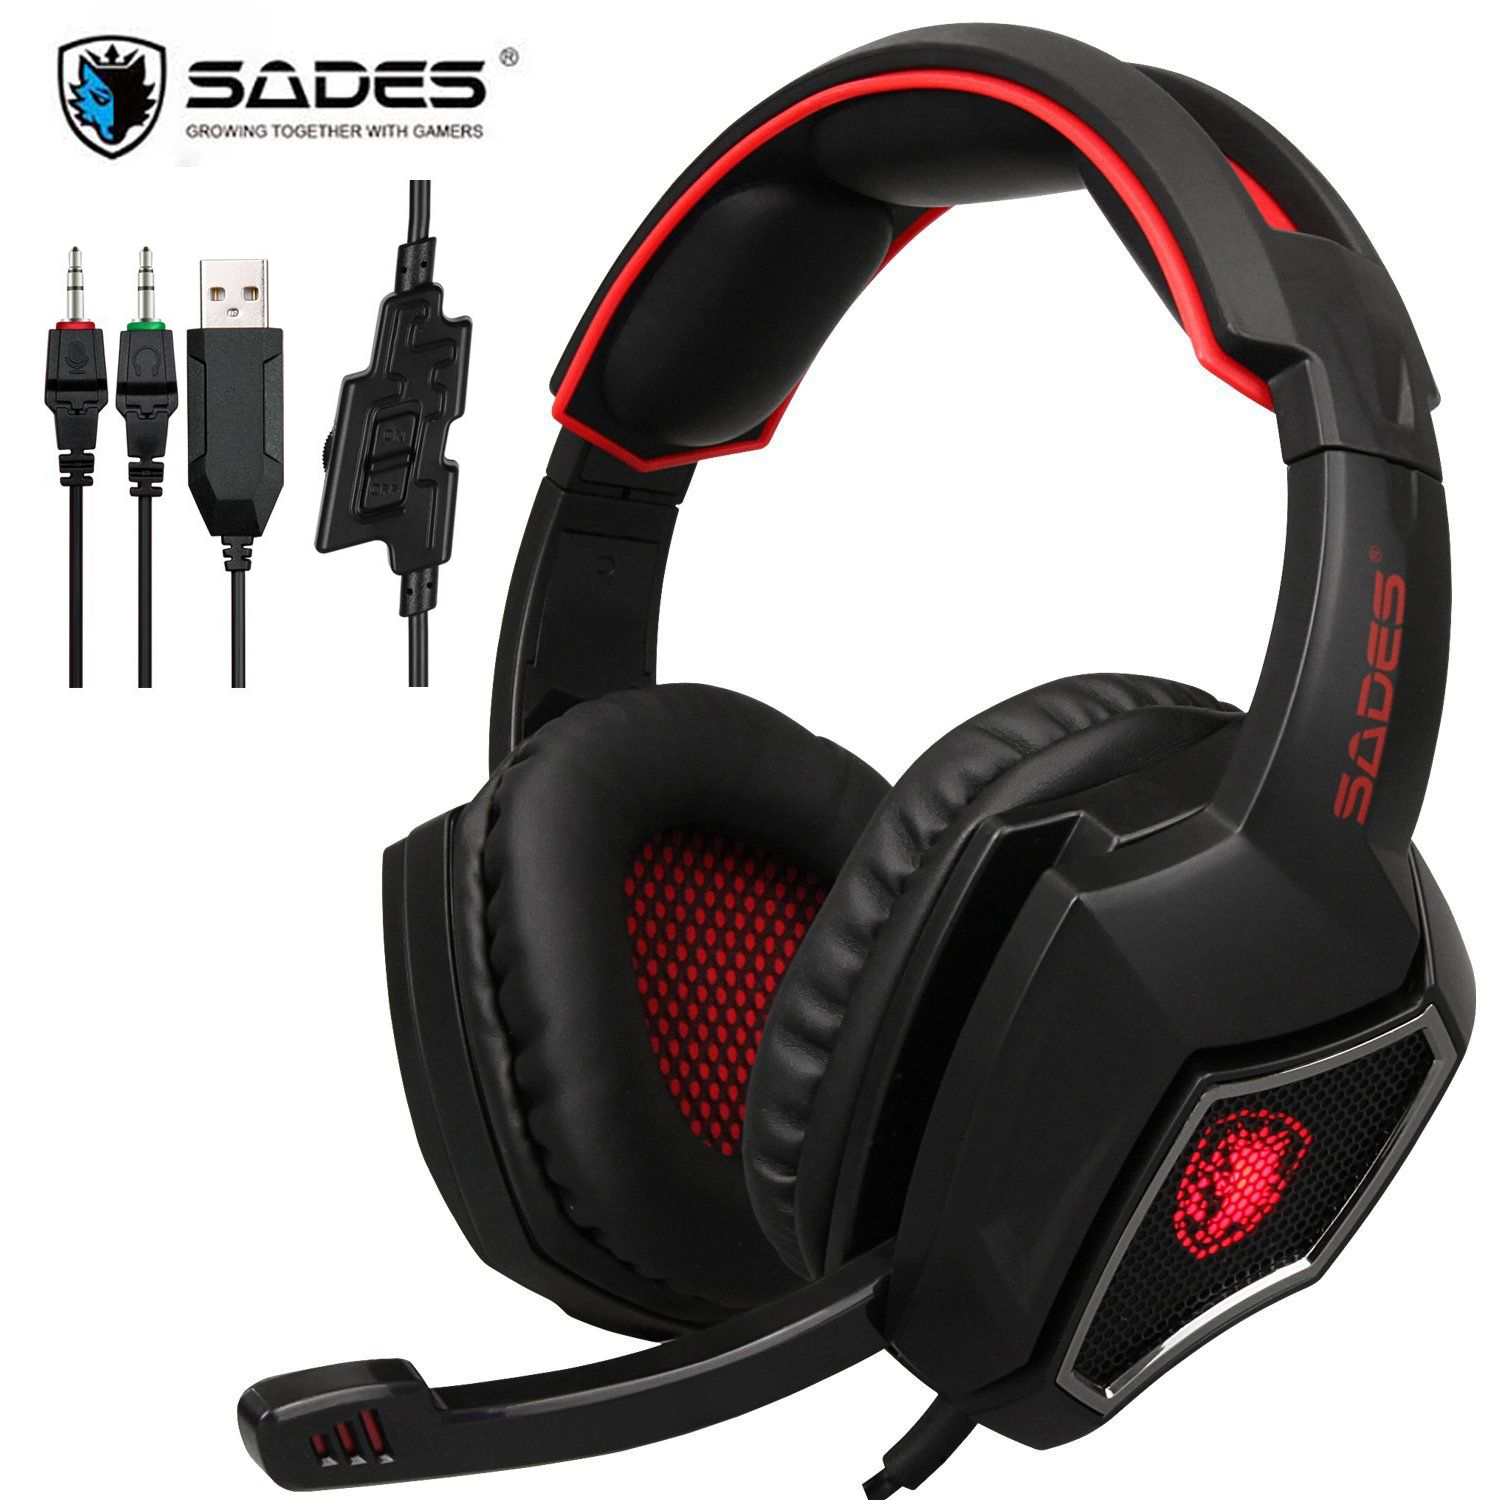 SADES Gaming Headset Wired Headphones Deep Bass Stereo wired gamer Earphone With Mic LED For PS4 XBox One/Laptop Tablet PC image